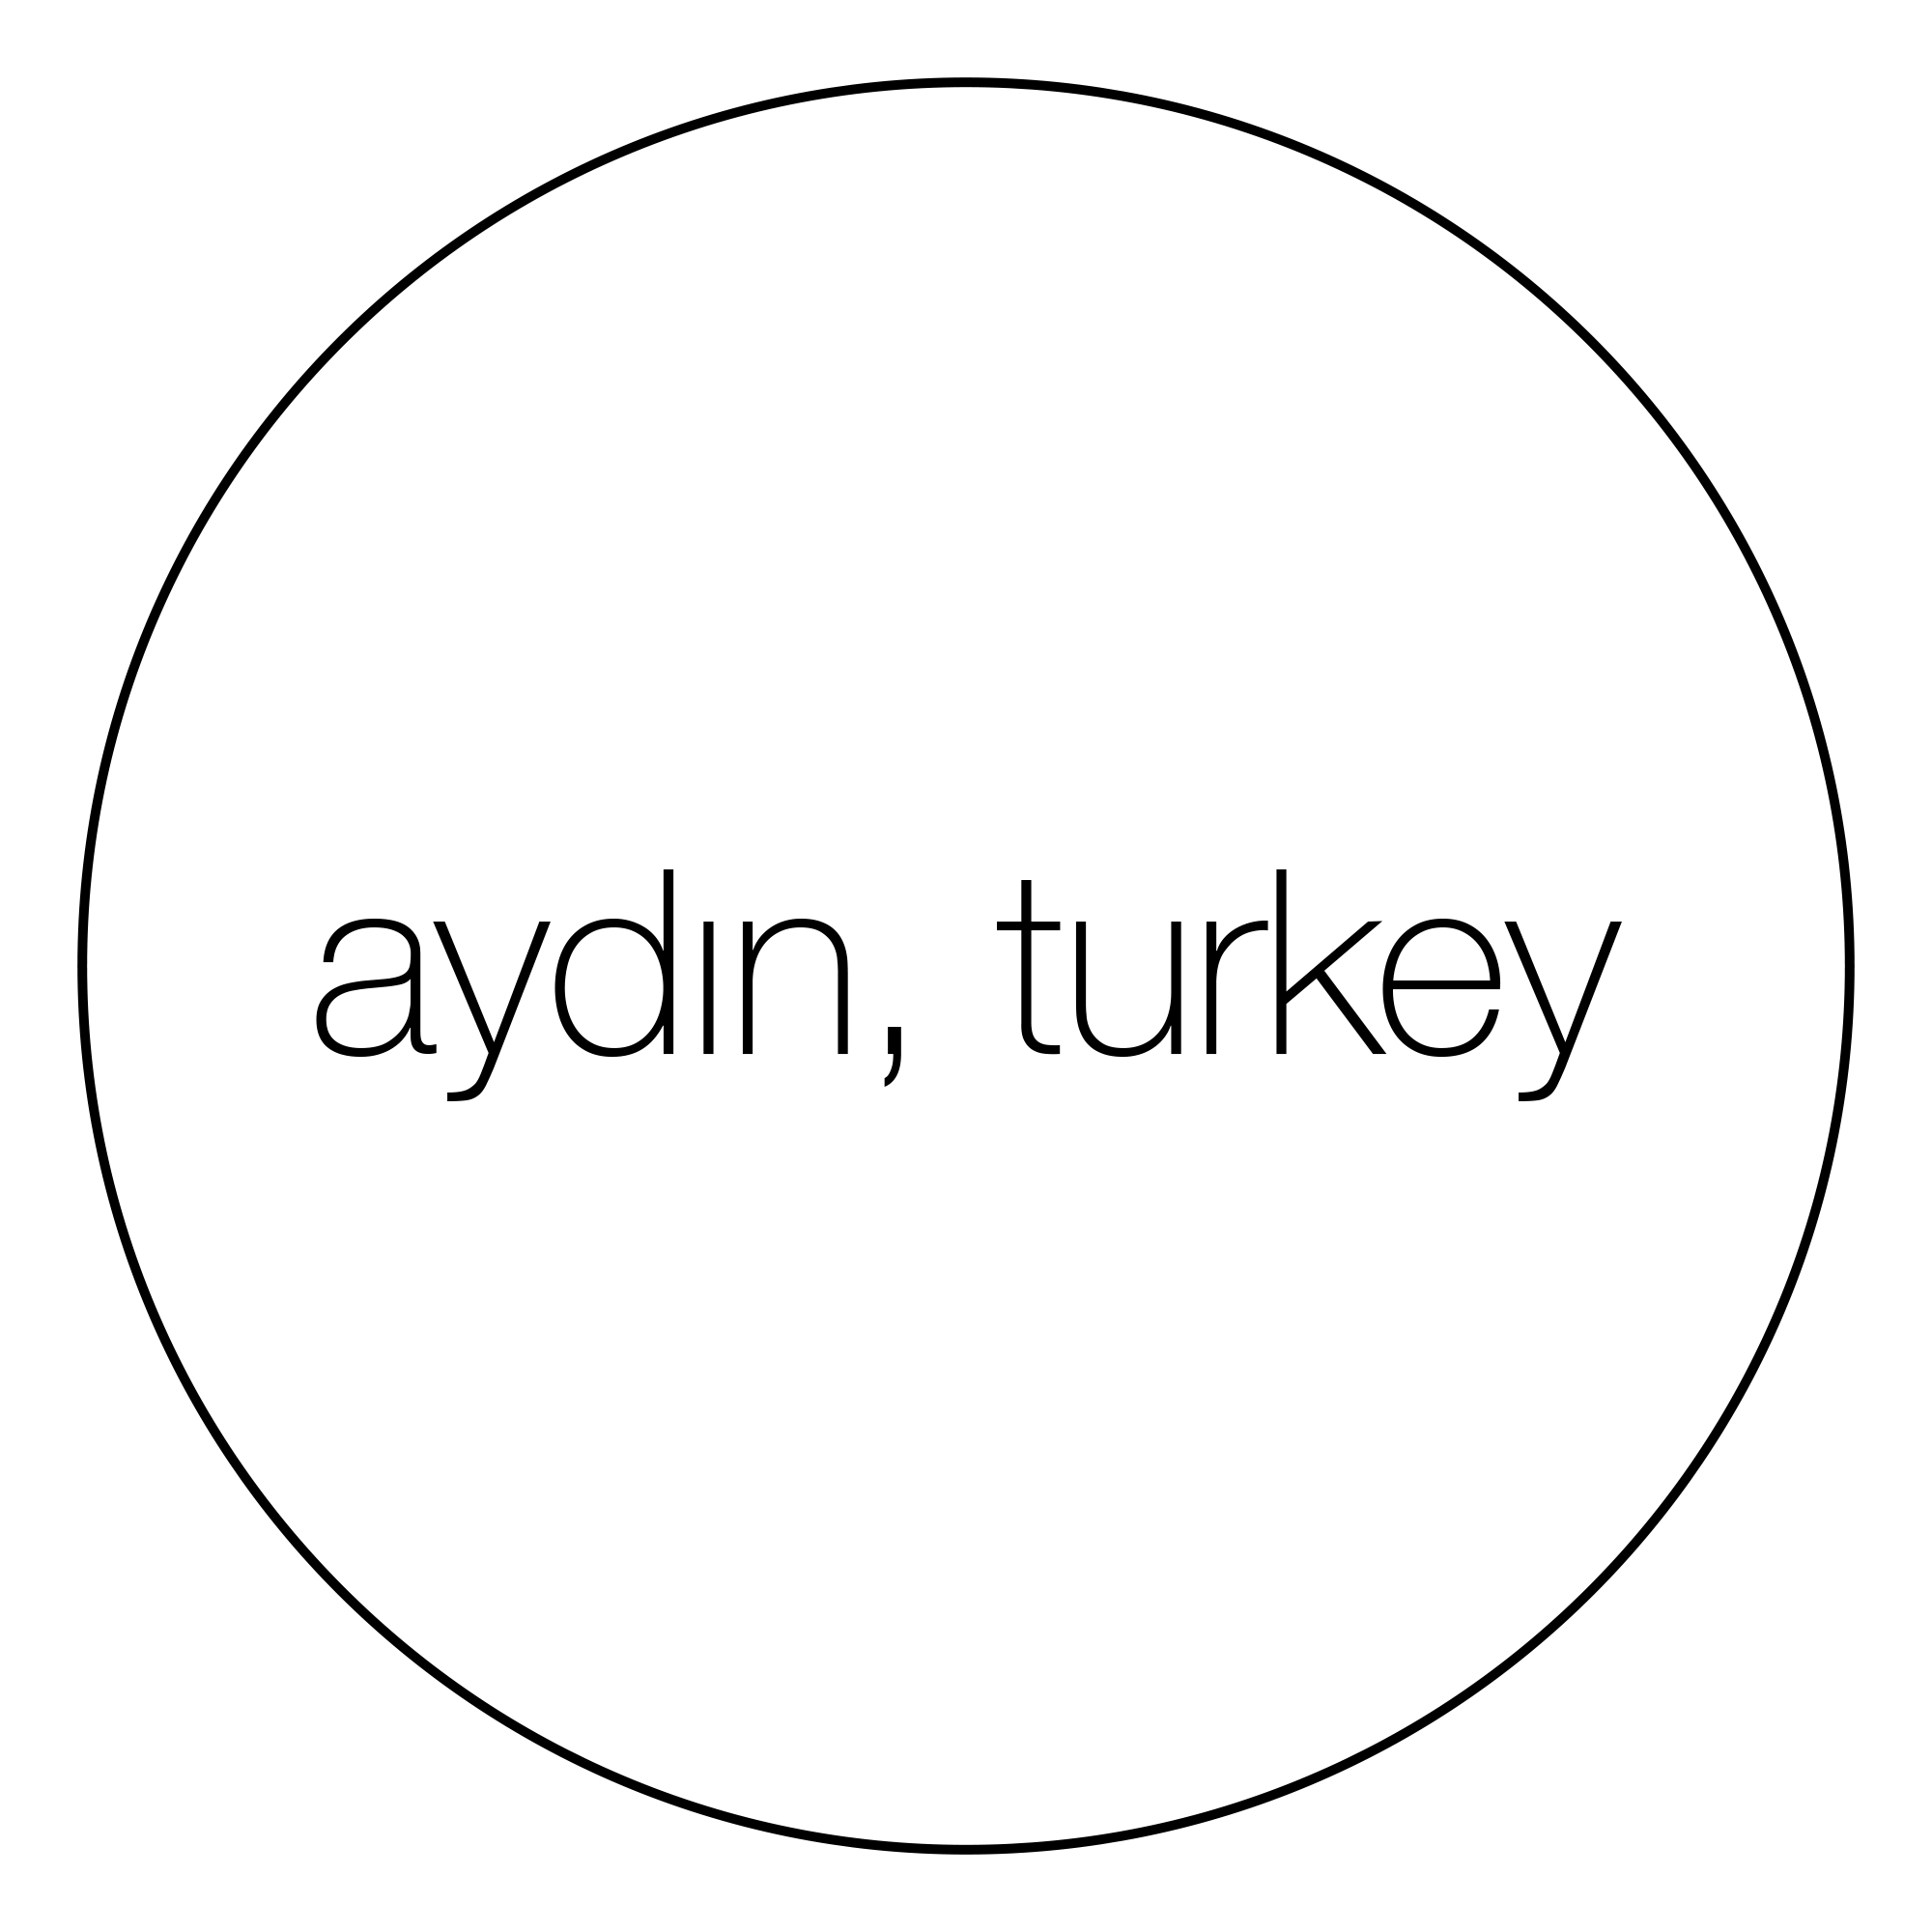 attribute-origin-aydin-turkey